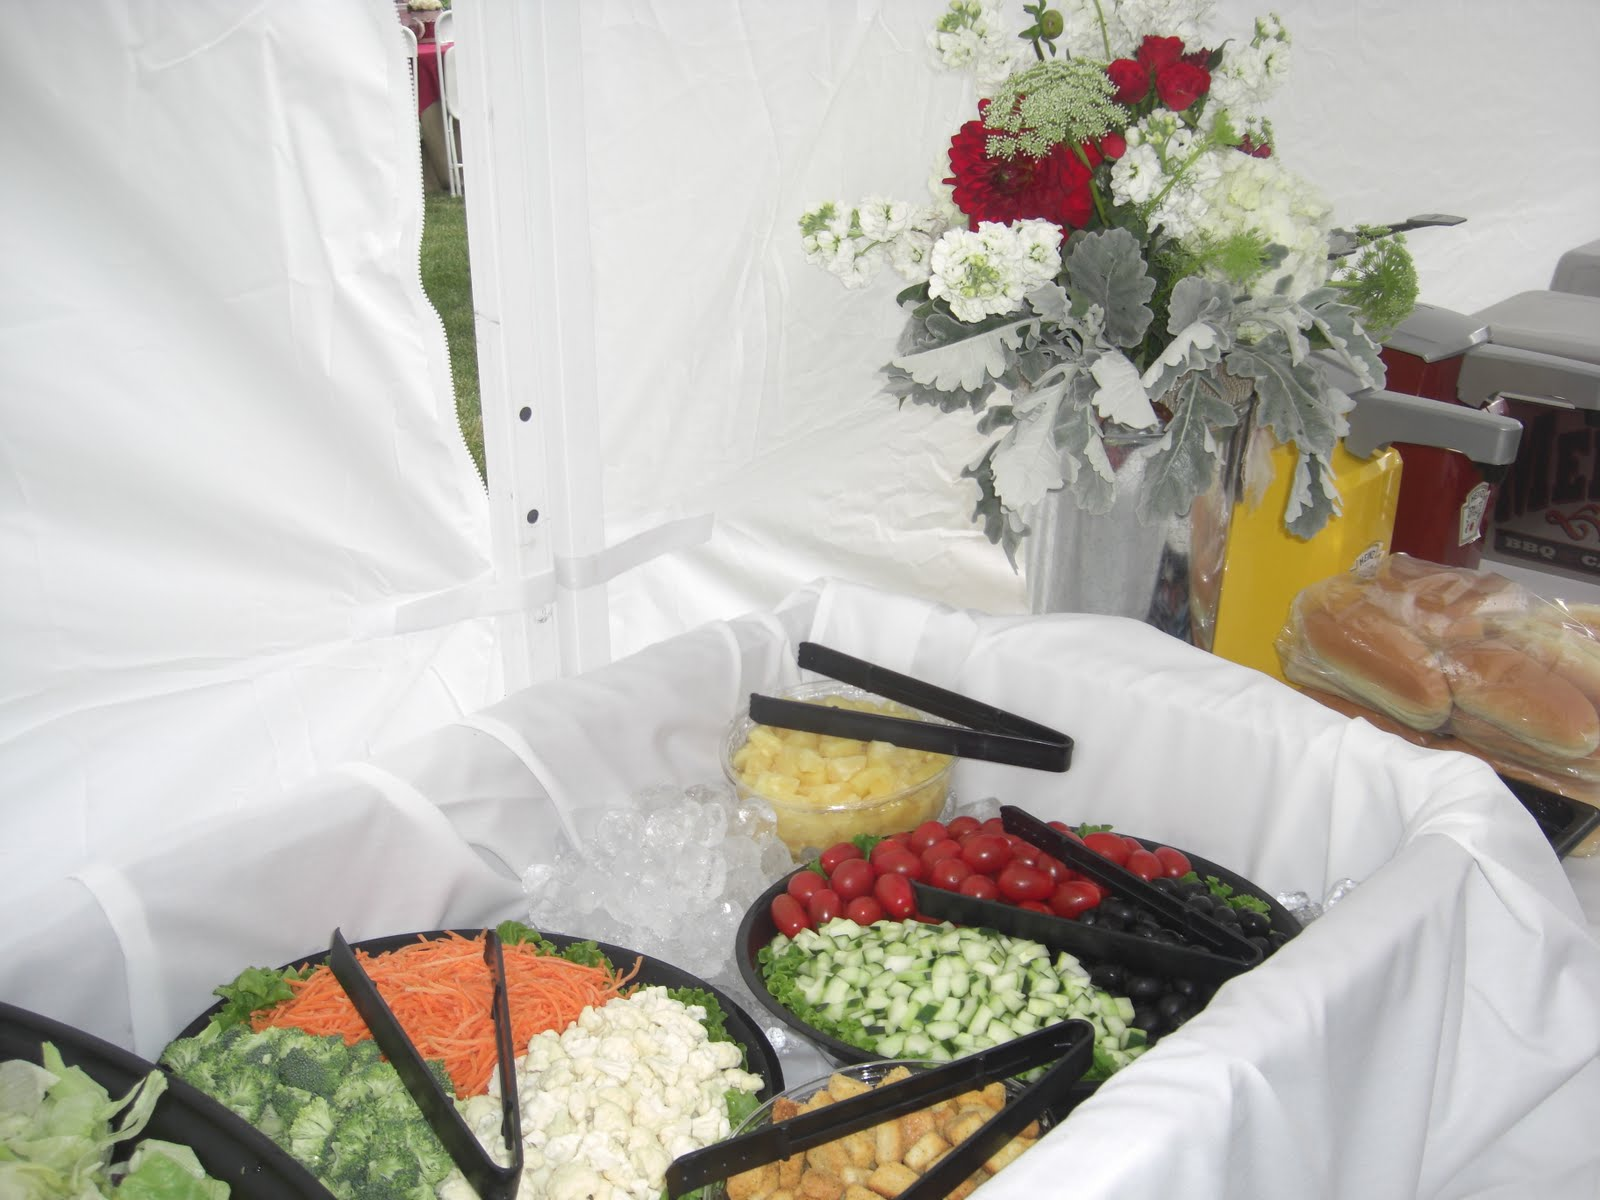 Fun Classy Wedding - Catering for your Salt Lake City Weddings ...